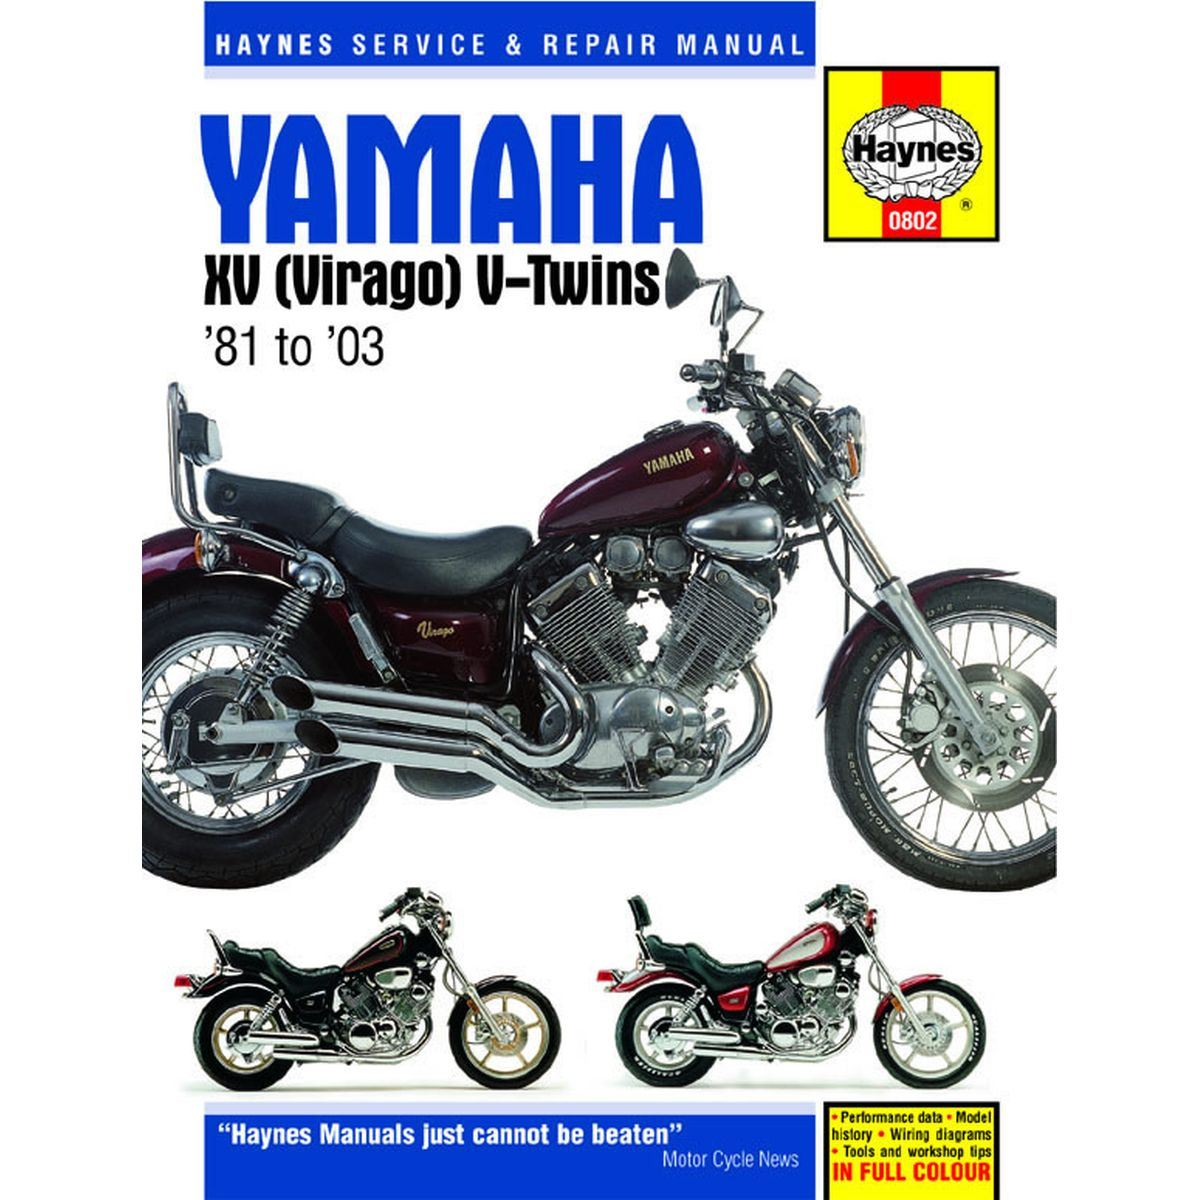 Details about Manual Haynes for 1991 Yamaha XV 1100 Virago (3LP2) on